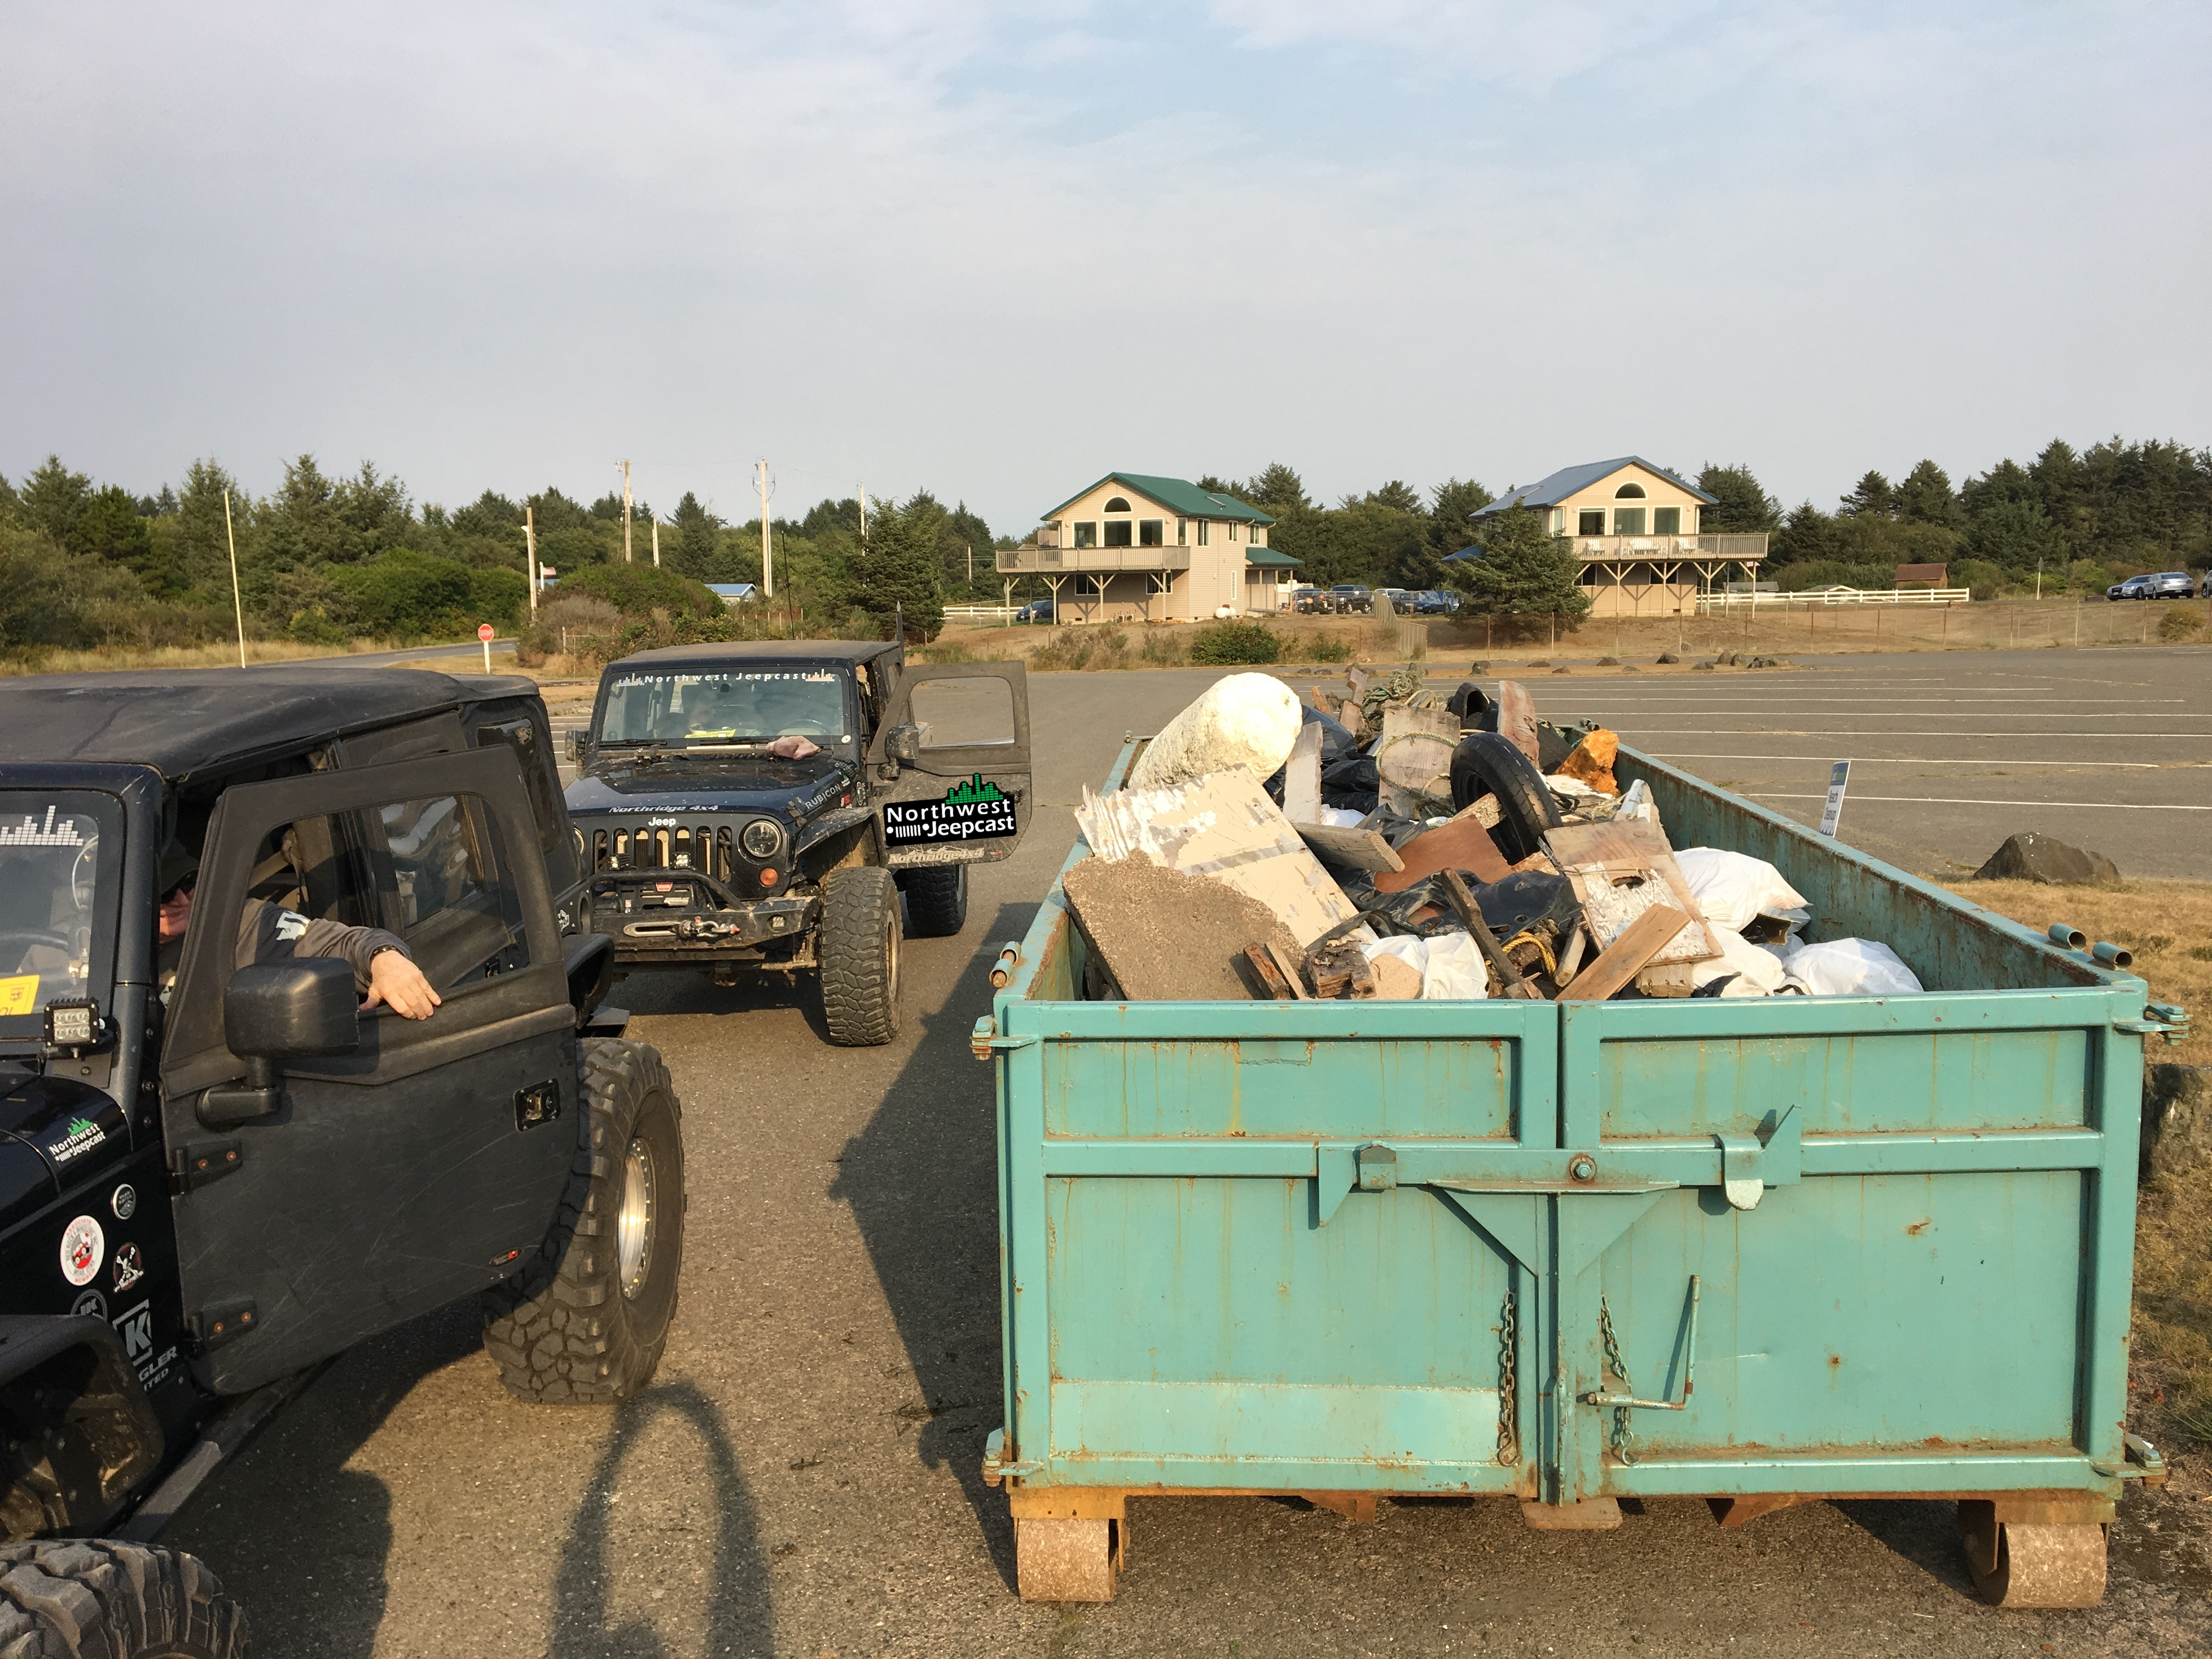 Northwest Jeepcast - A Jeep Podcast - Operation Shore Patrol 2017